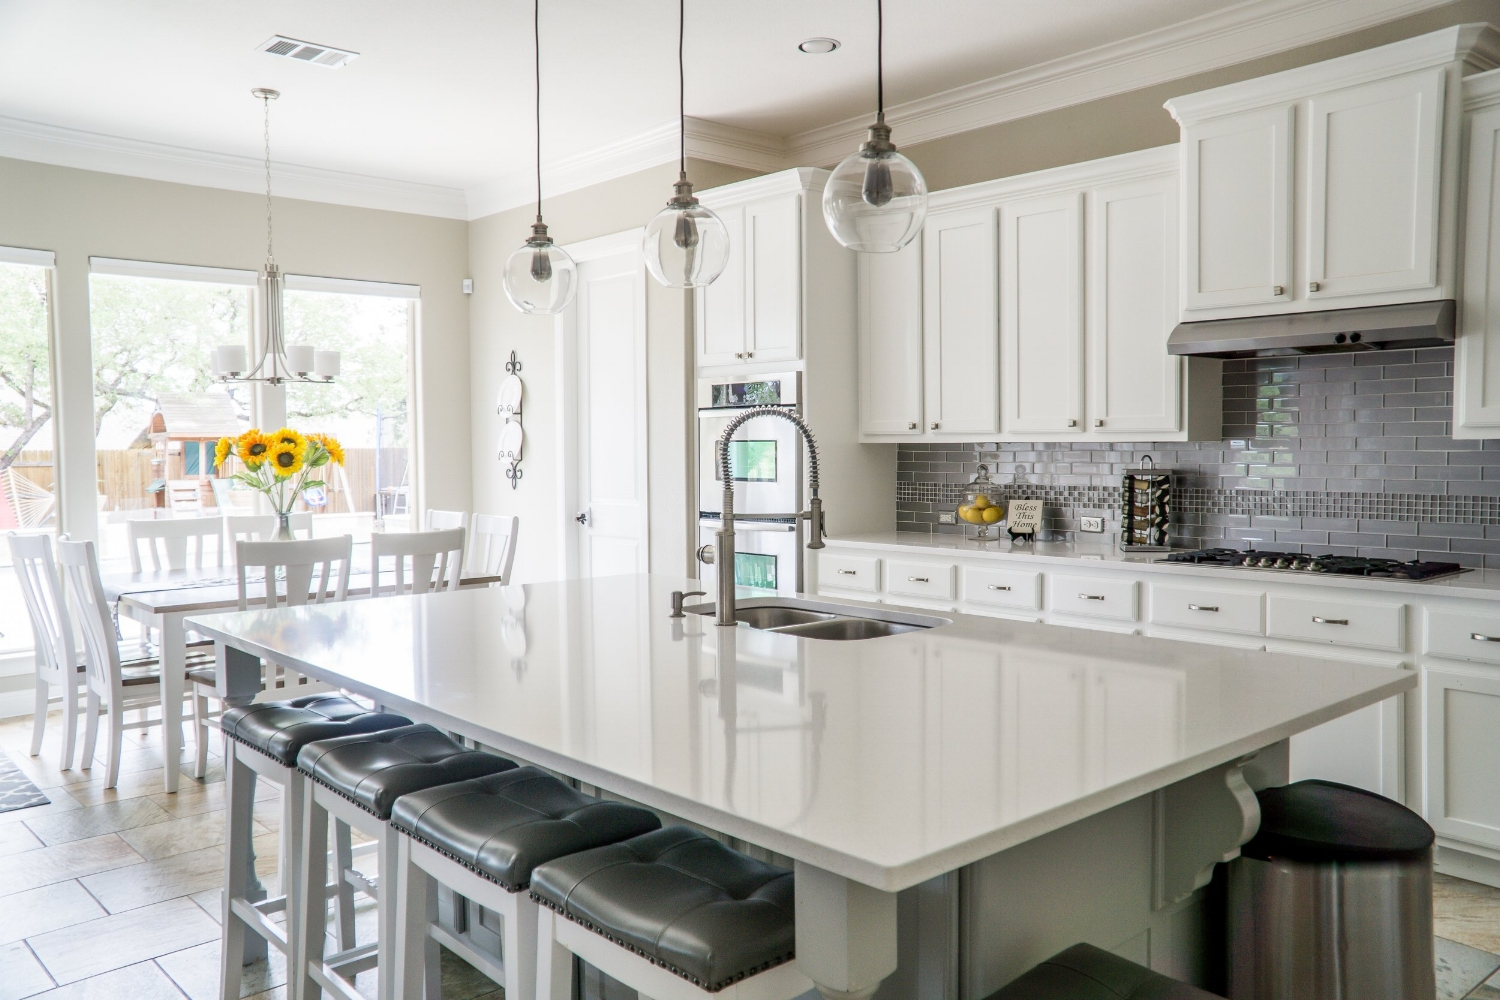 tile-backsplash-white-cleveland-oh-cabinet-contemporary-counter-1080721.jpg